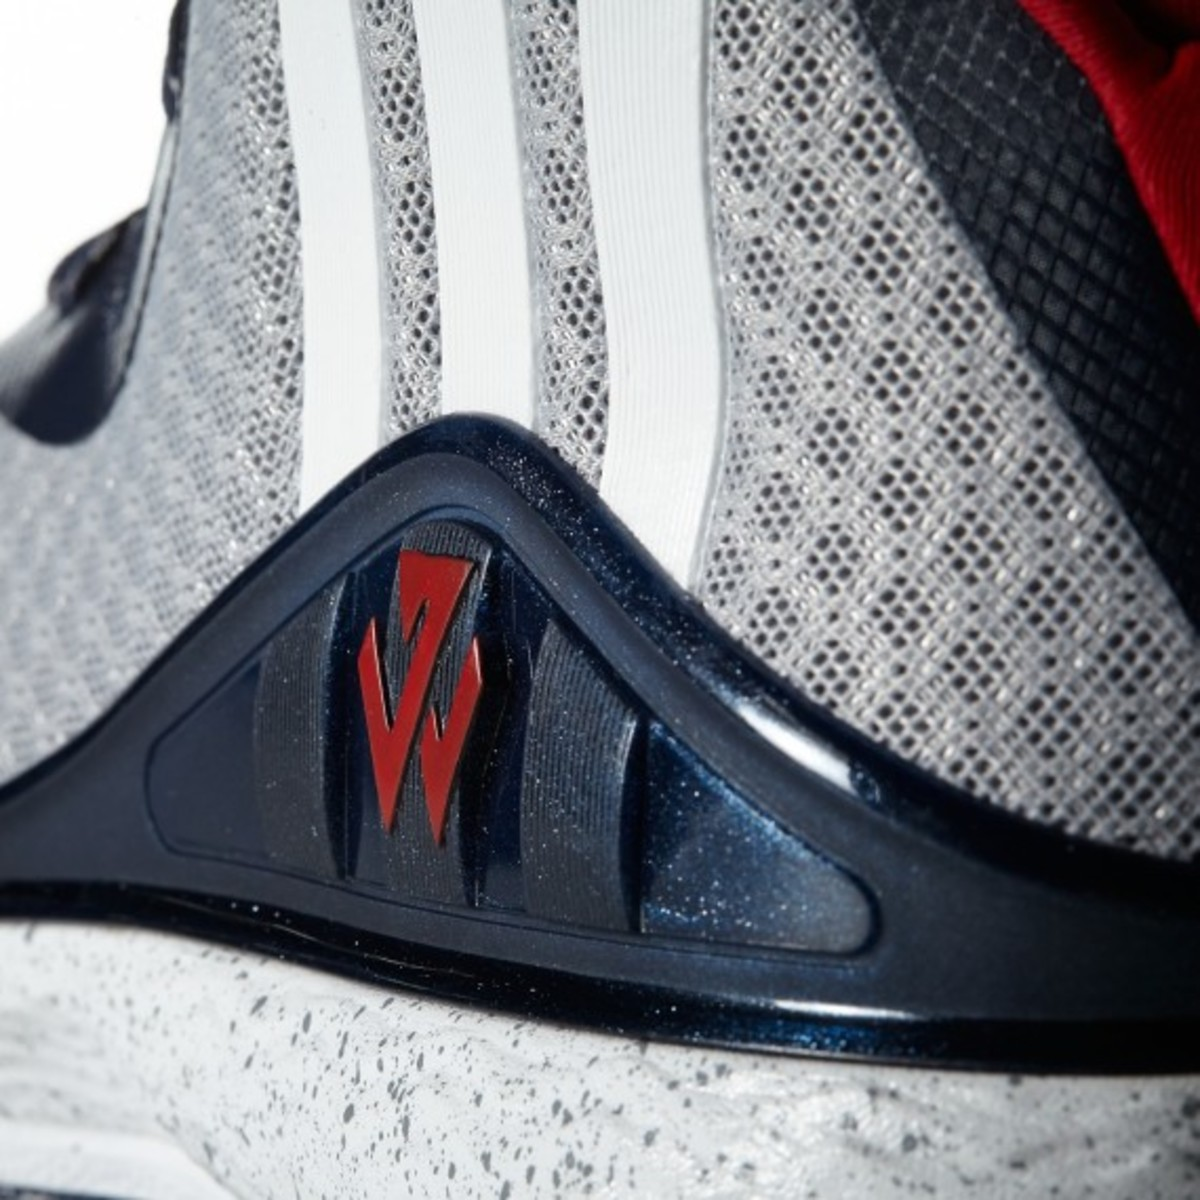 adidas-j-wall-1-signature-basketball-shoe-16